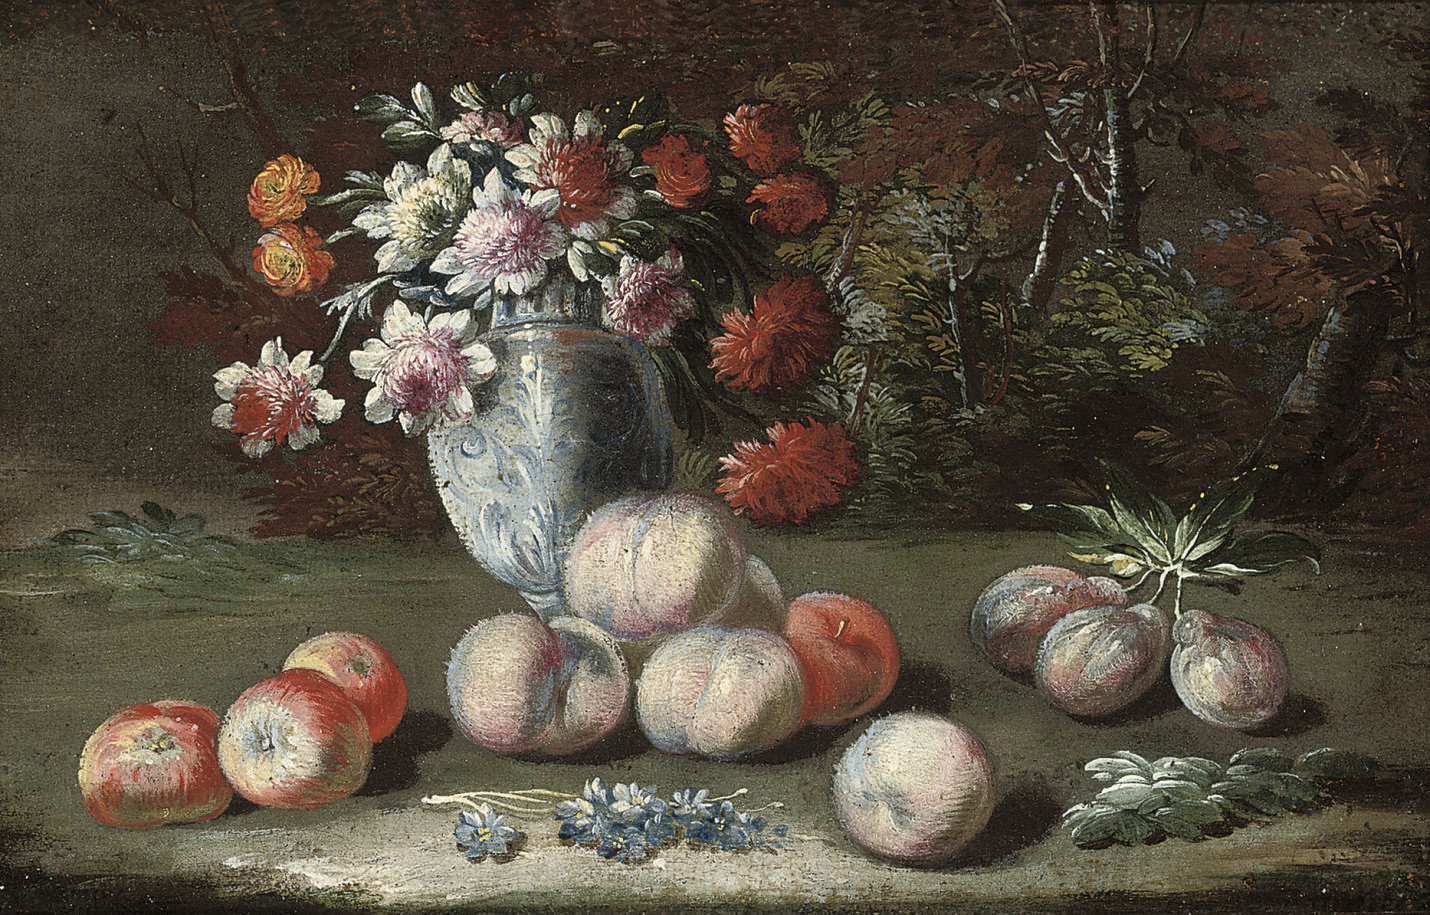 Chrysanthemums in a china vase, with apples, peaches and plums, in a landscape